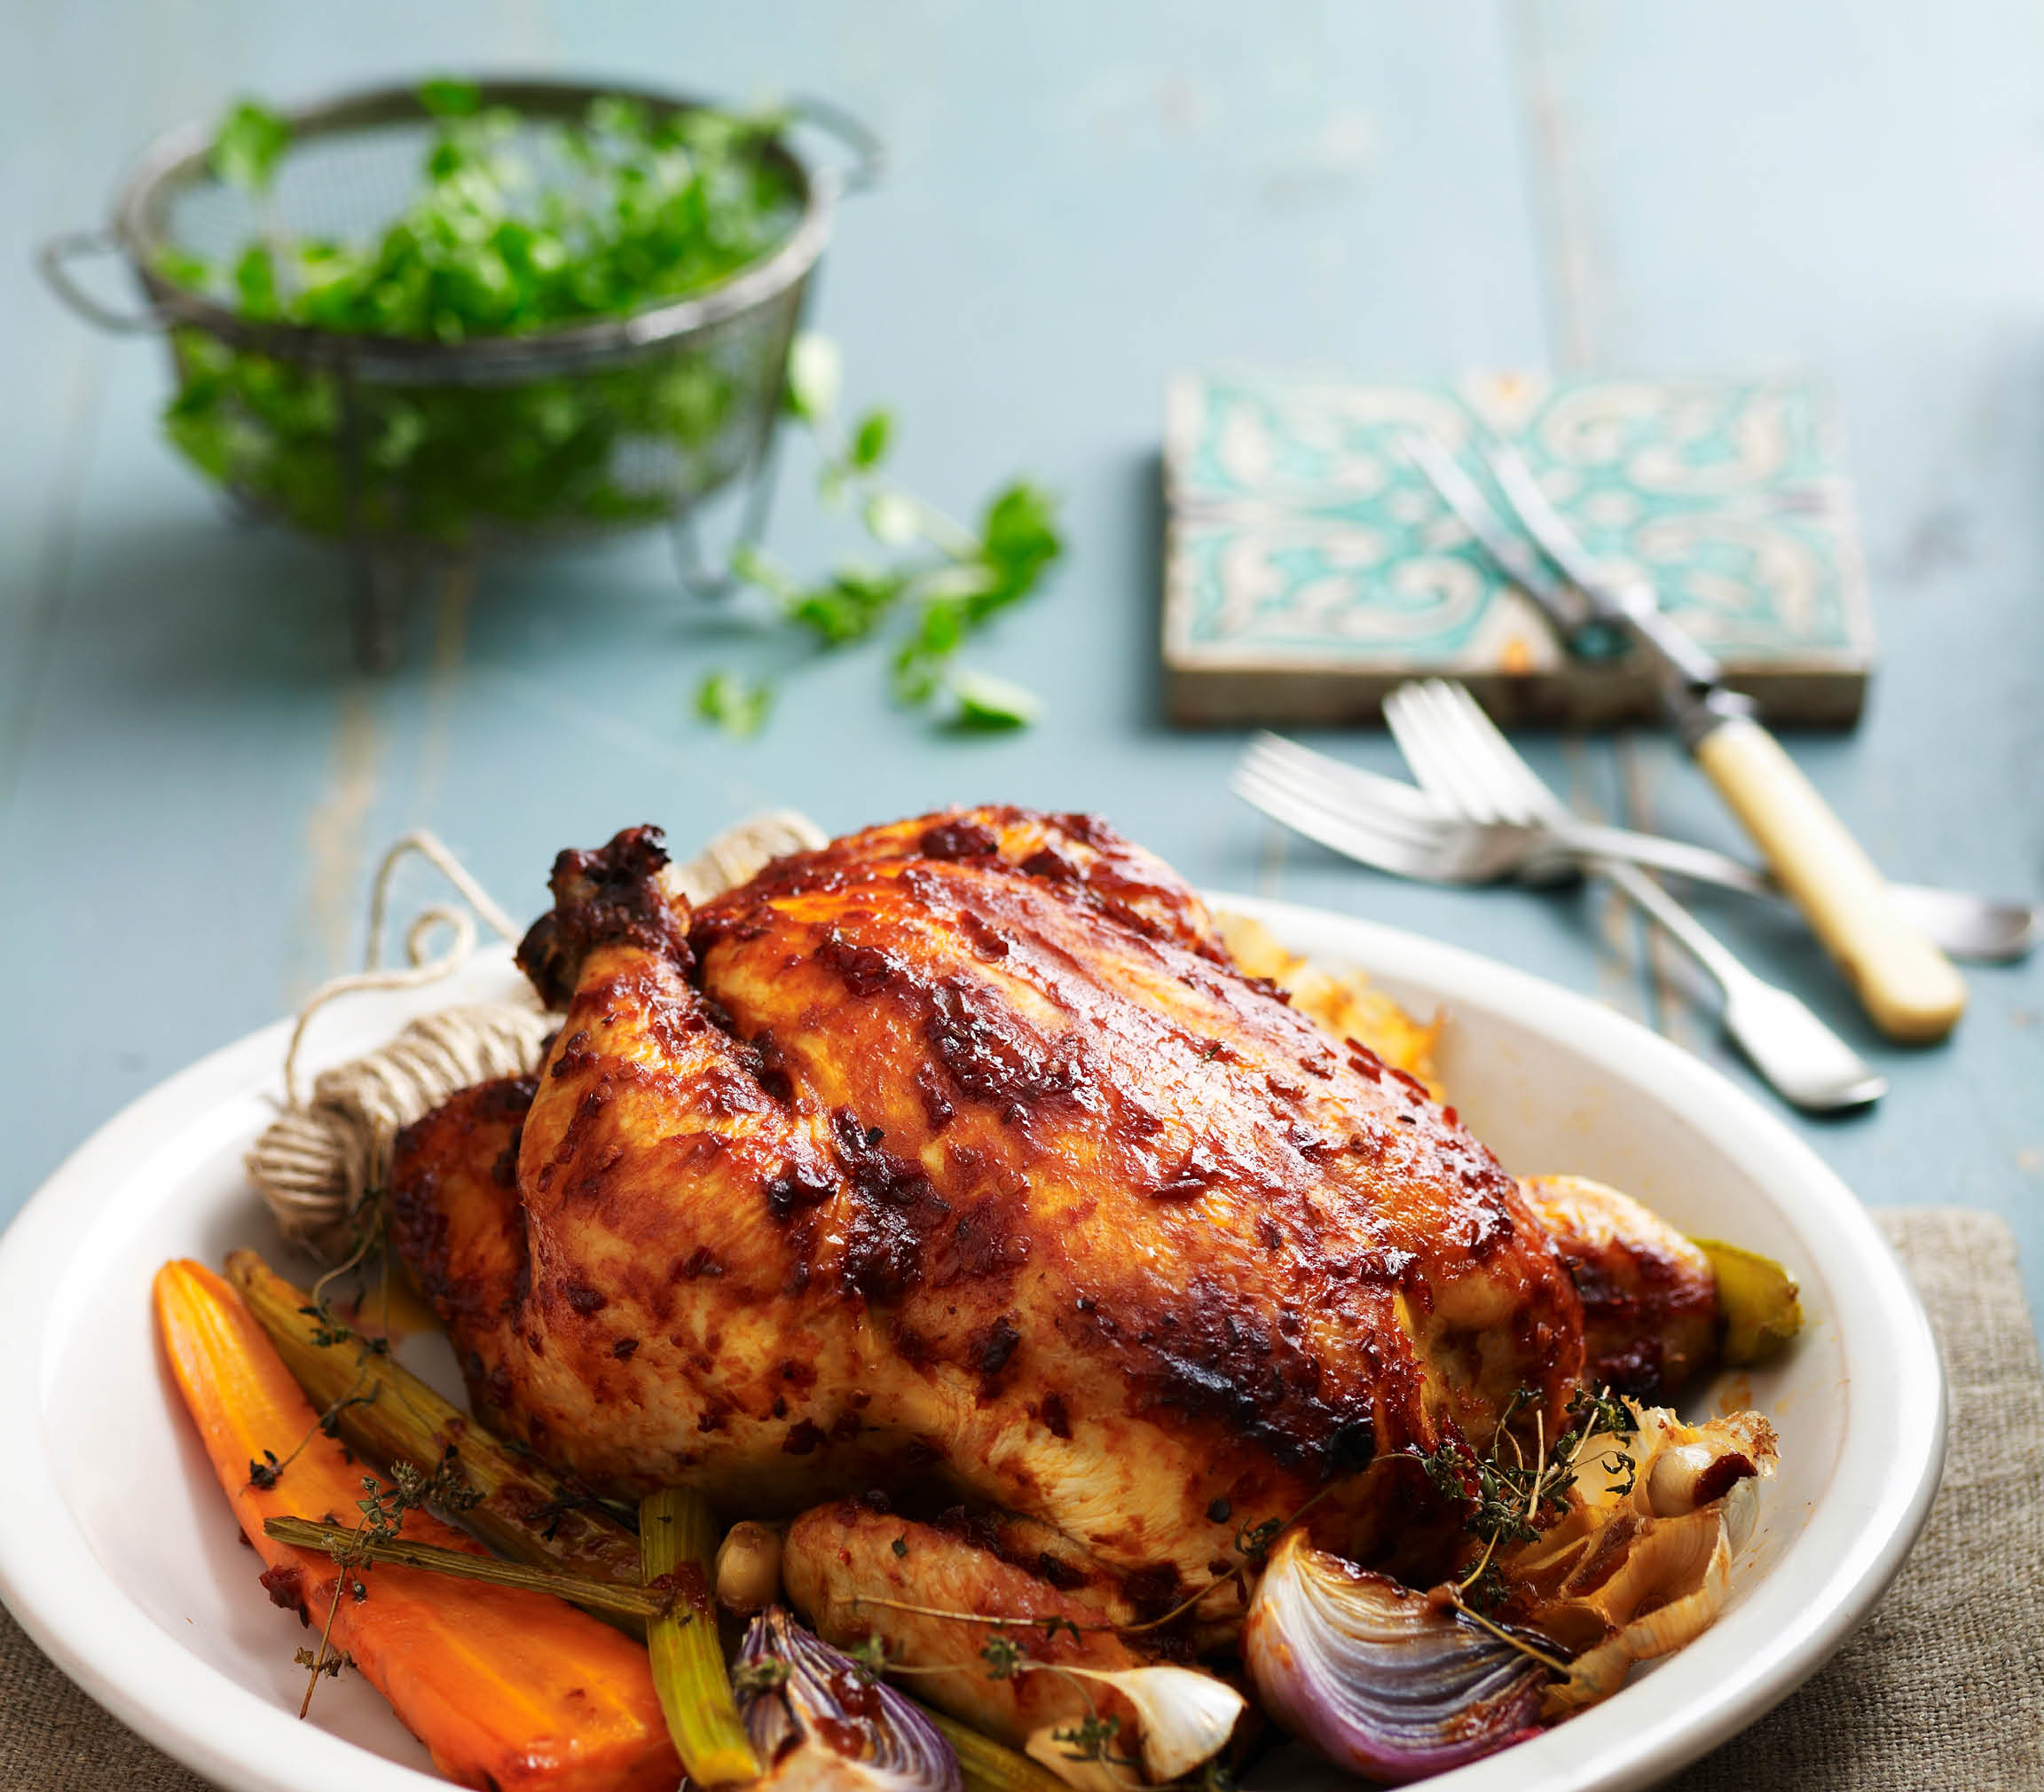 CH4801_Charter Hall_National_Recipes Winter 2019_Social Tiles_Harissa Chicken_Facebook Post_FA